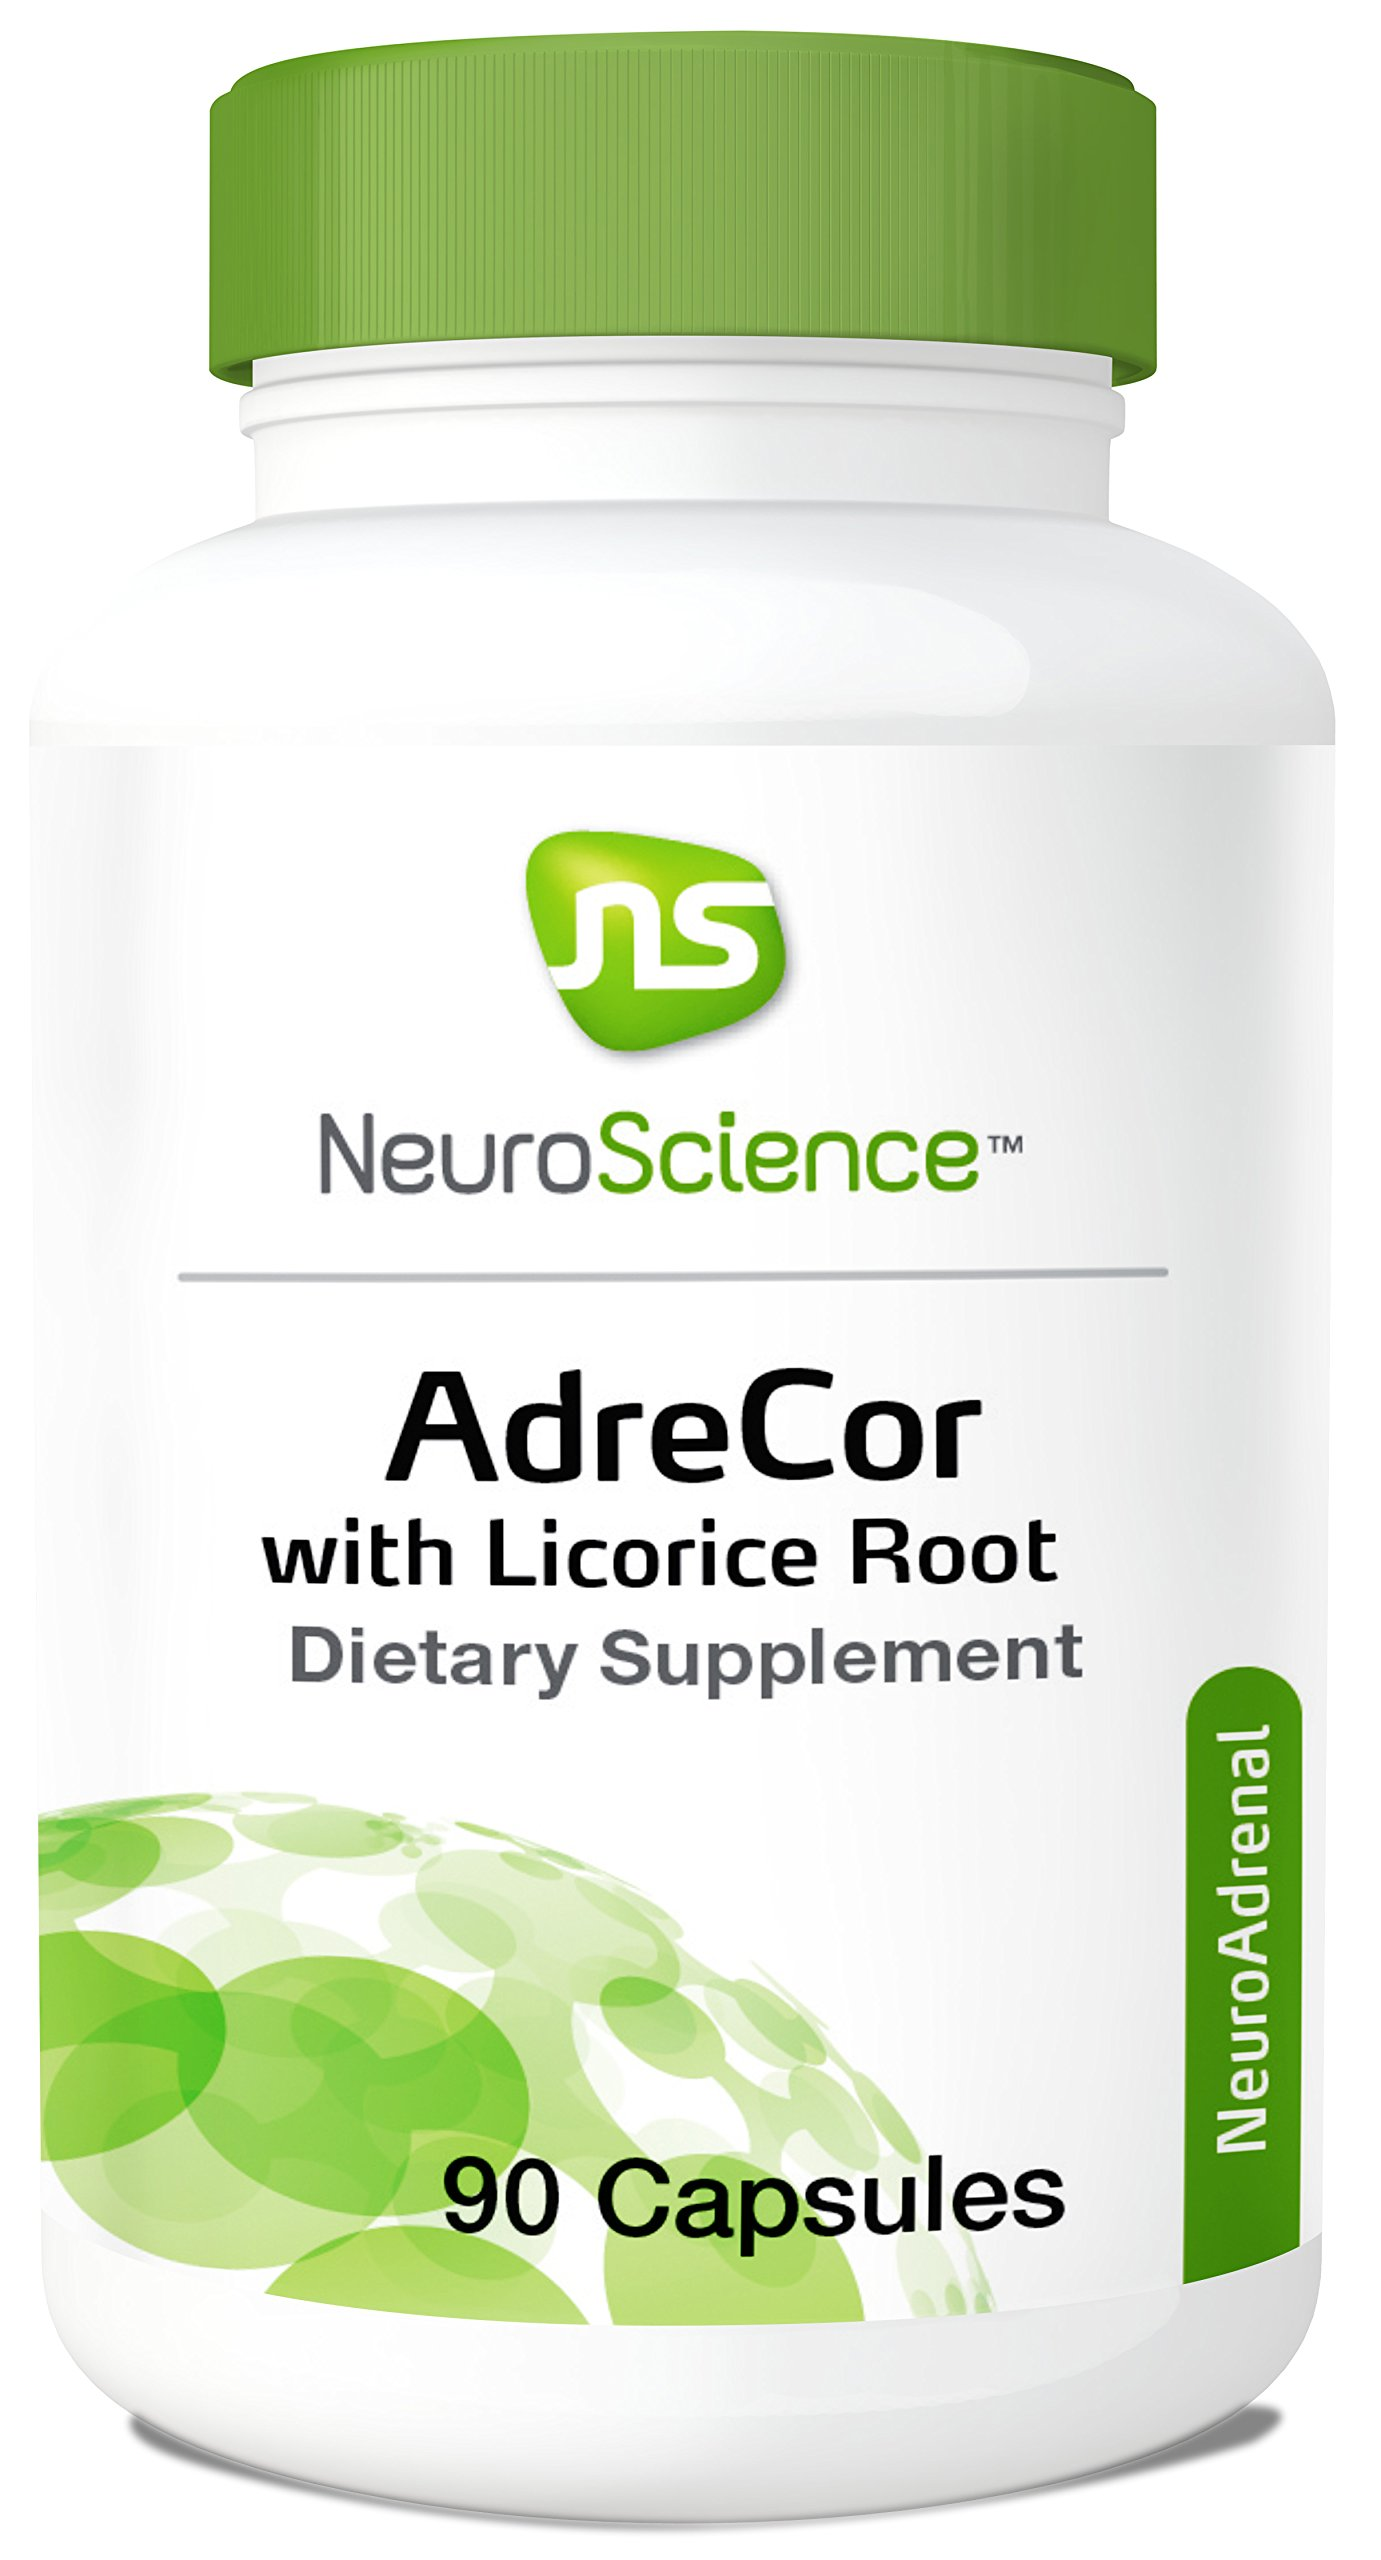 NeuroScience AdreCor with Licorice Root - Adrenal Energy Support Complex with Rhodiola + Histidine to Help Increase Cortisol and Reduce Fatigue (90 Capsules)